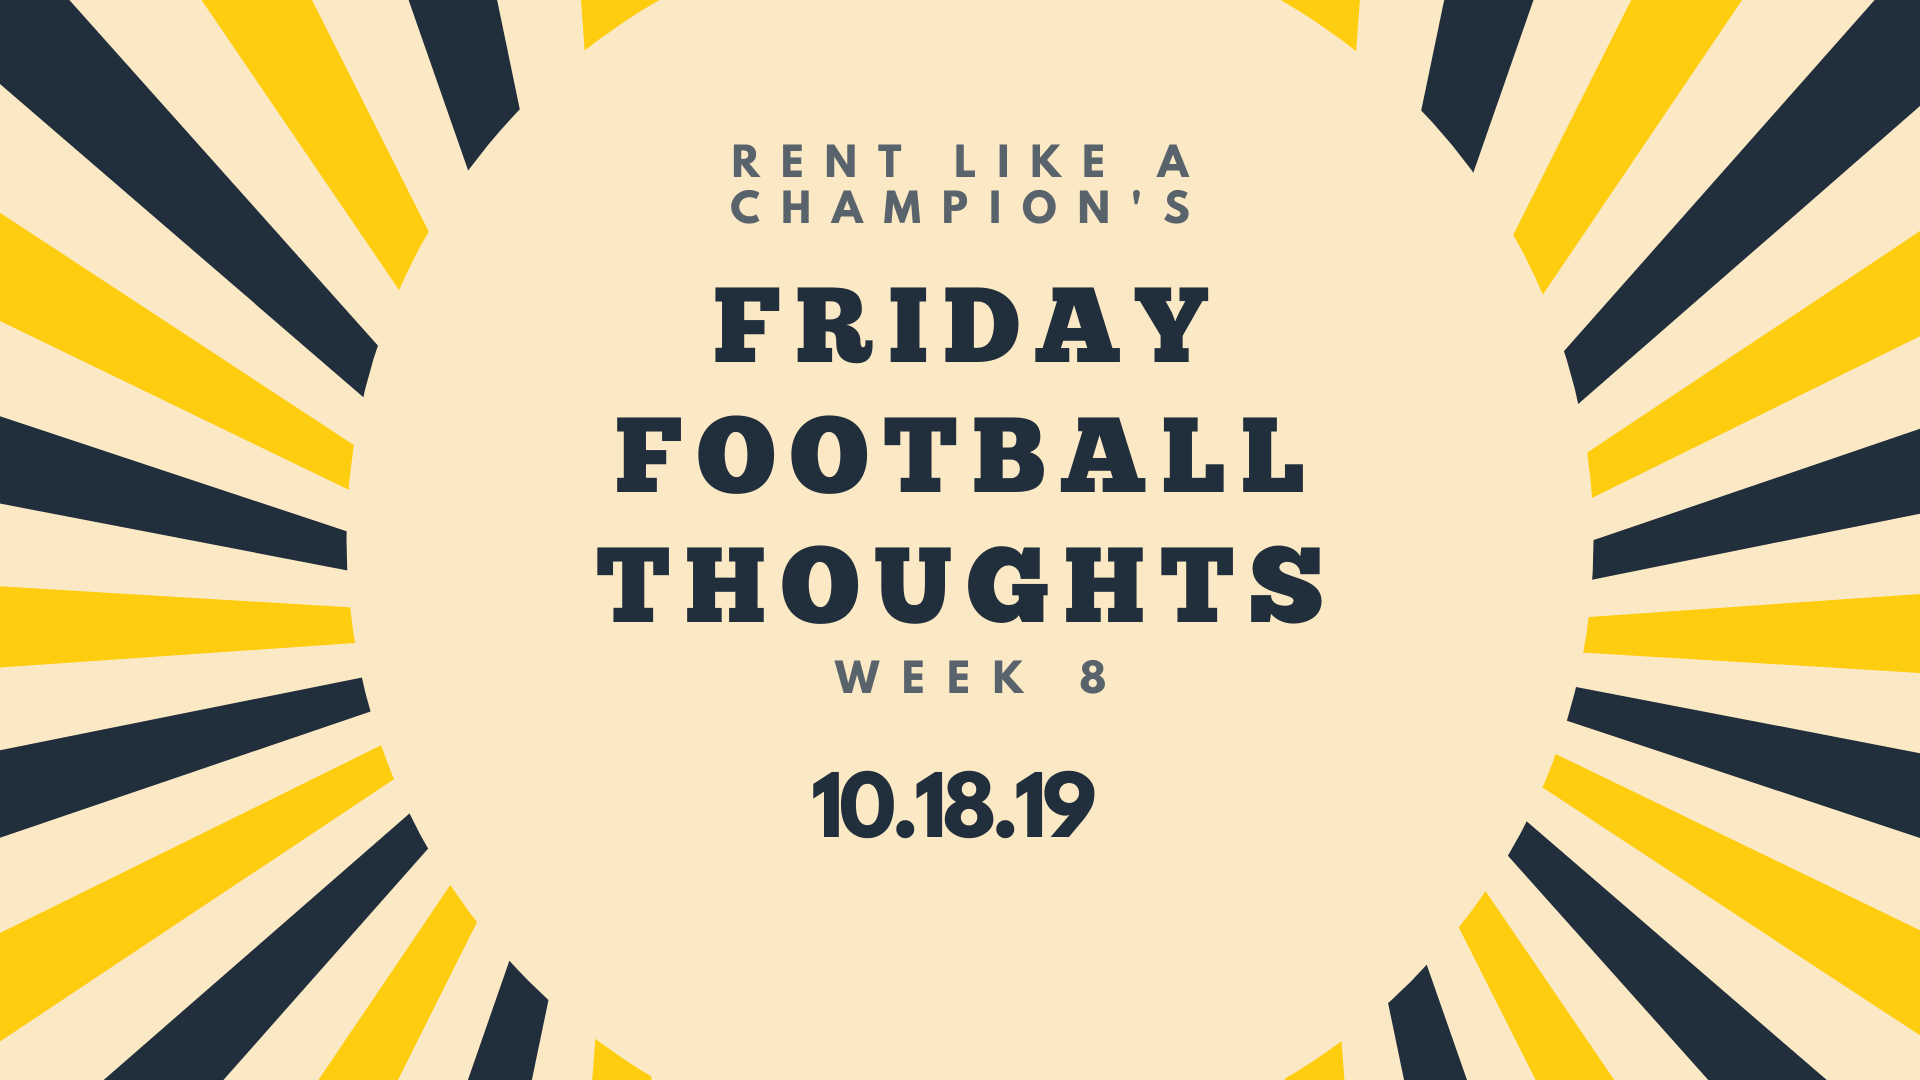 Friday Football Thoughts Template